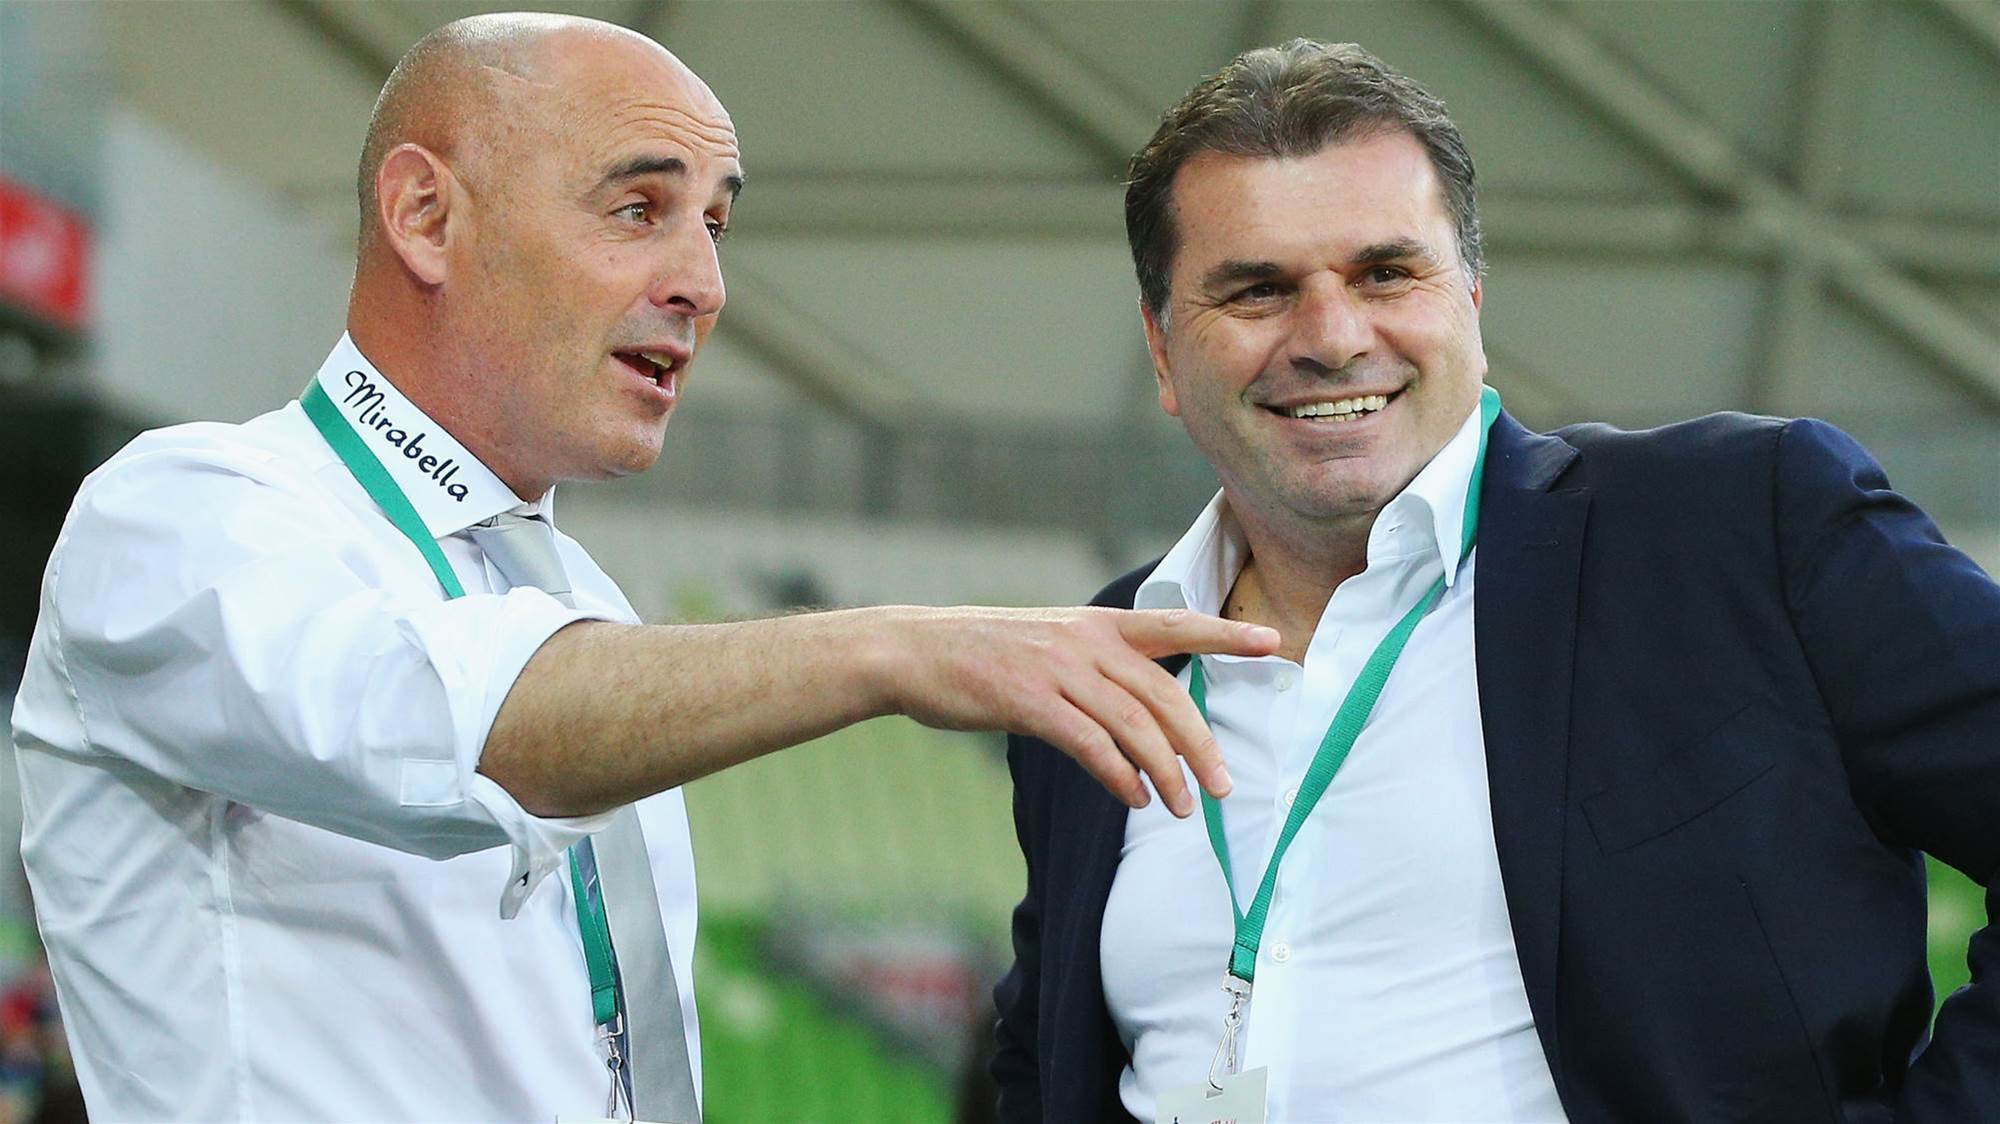 Muscat: Let's treat Roo talk with respect